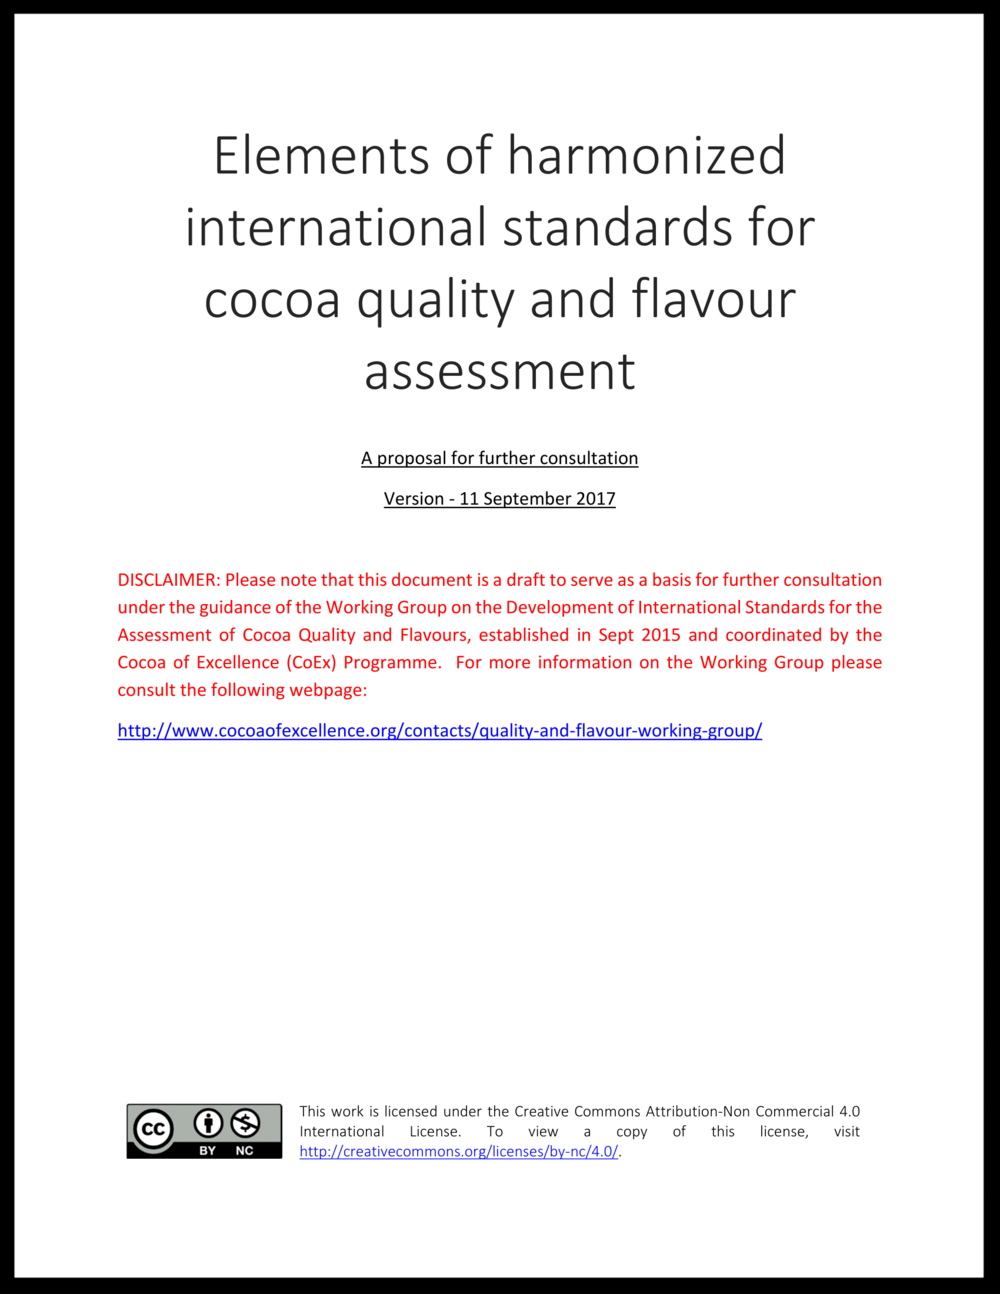 WG-Quality-Flavour-Standards-ENGLISH-11Set2017-01.png